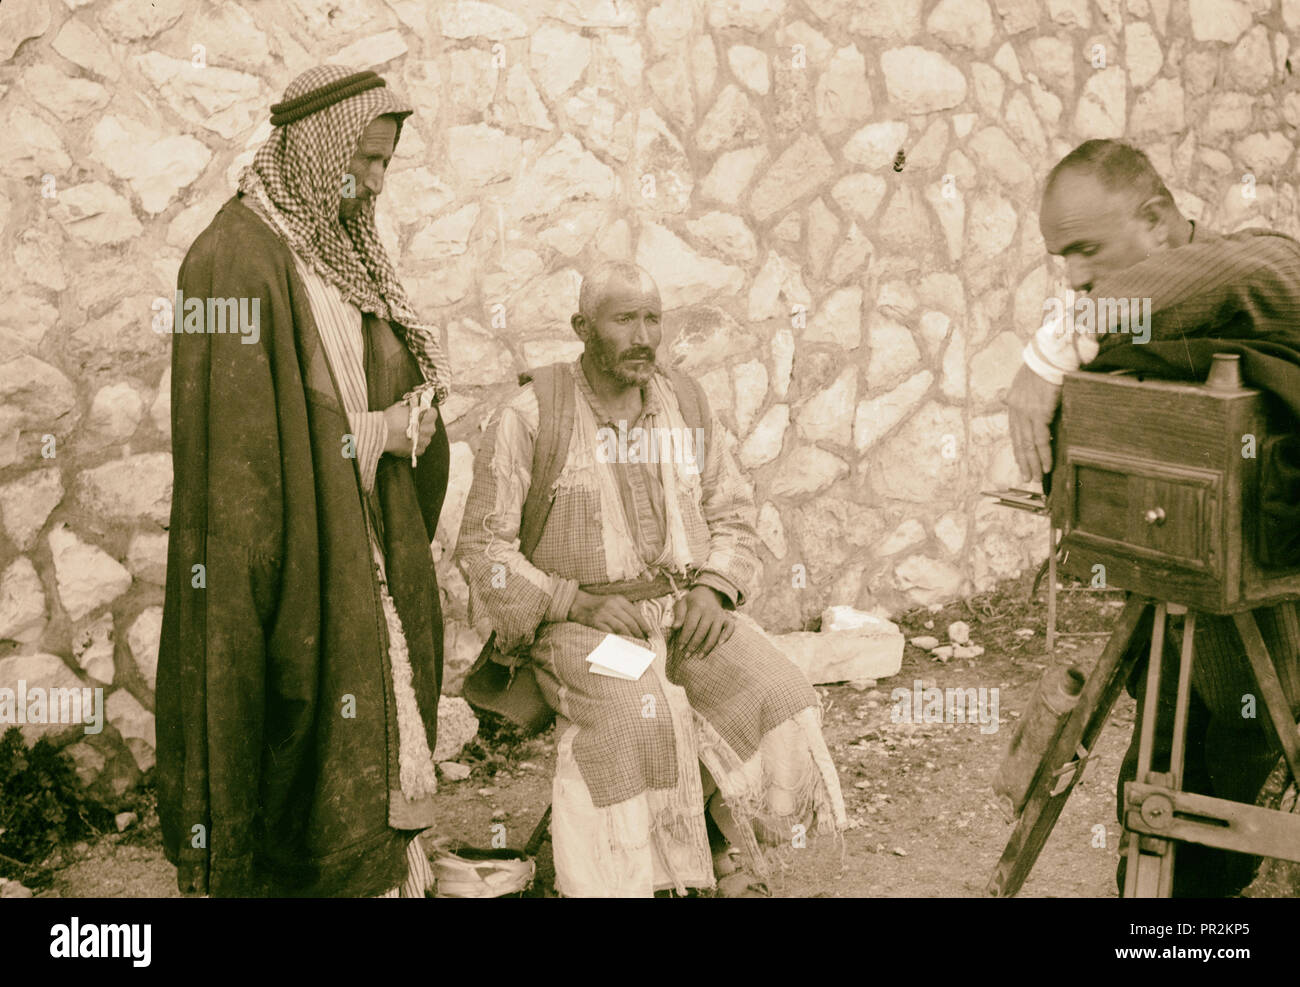 Peasants being photographed for identity cards, headdress removed. Photographer with camera taking a photograph of a man. 1934 - Stock Image